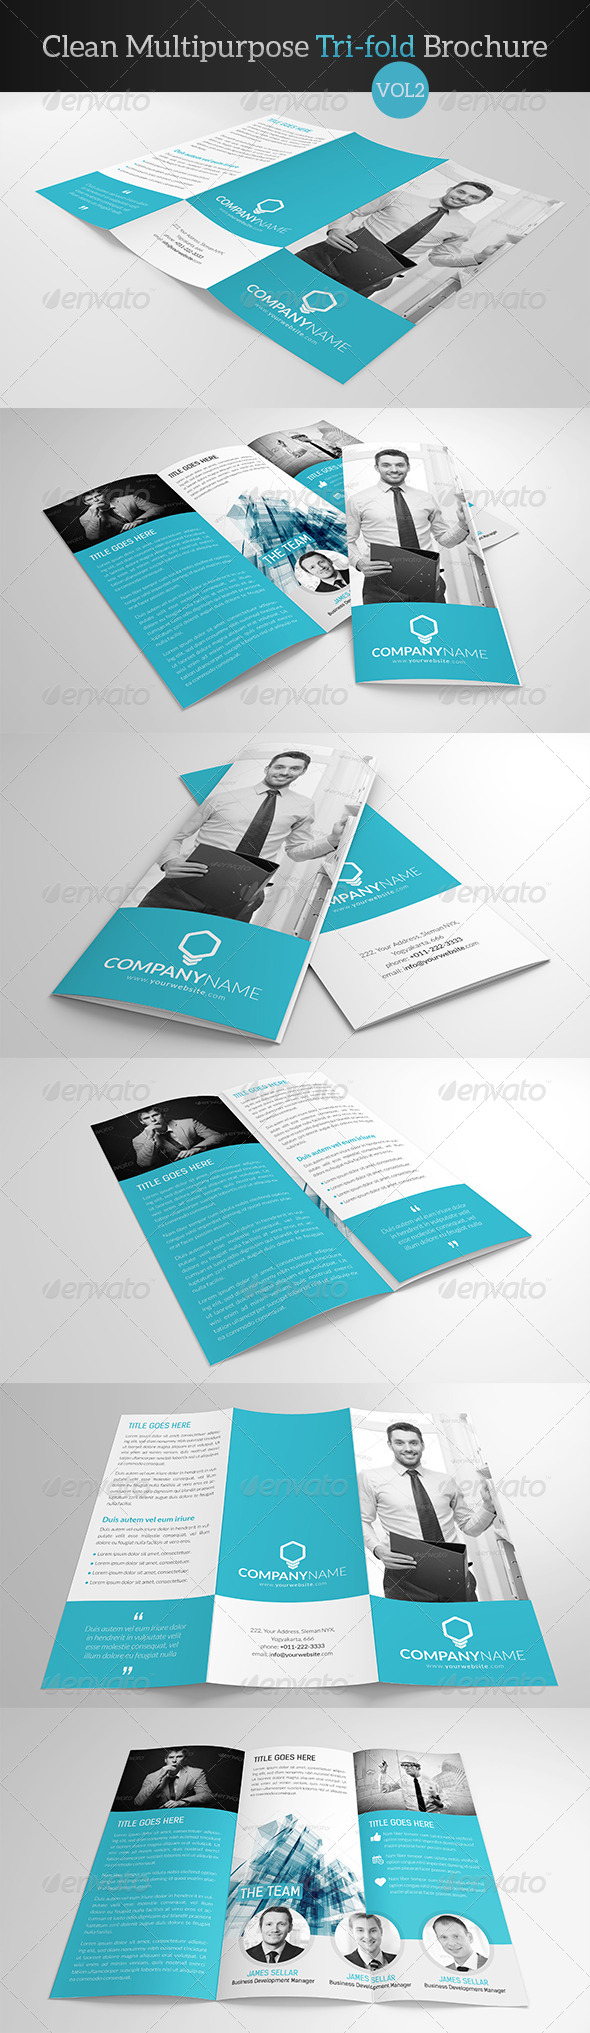 GraphicRiver Clean Multipurpose Trifold Brochure Vol 2 7908913